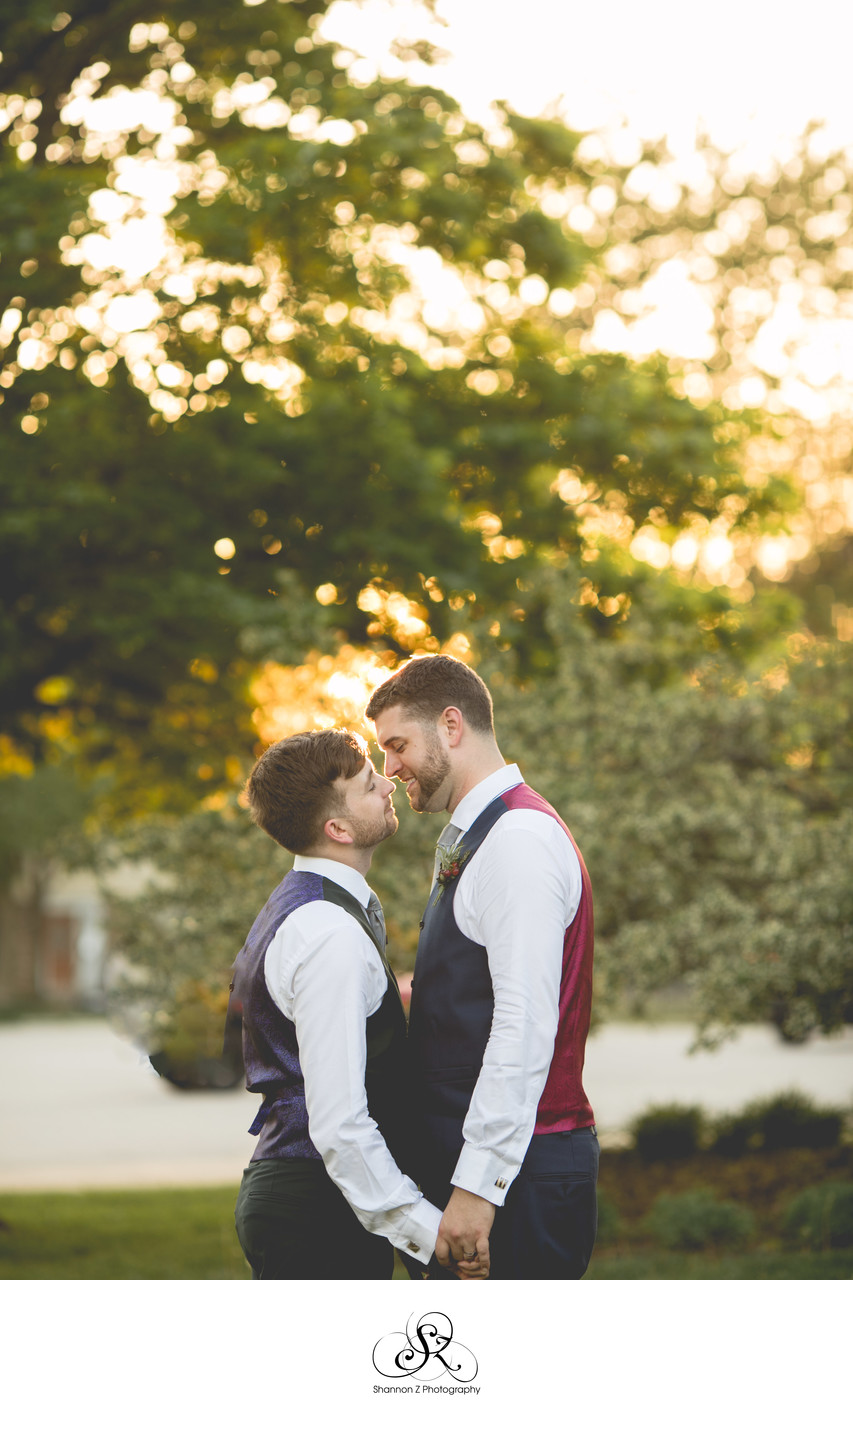 Golden Hour: LGBTQ Friendly Wedding Photography